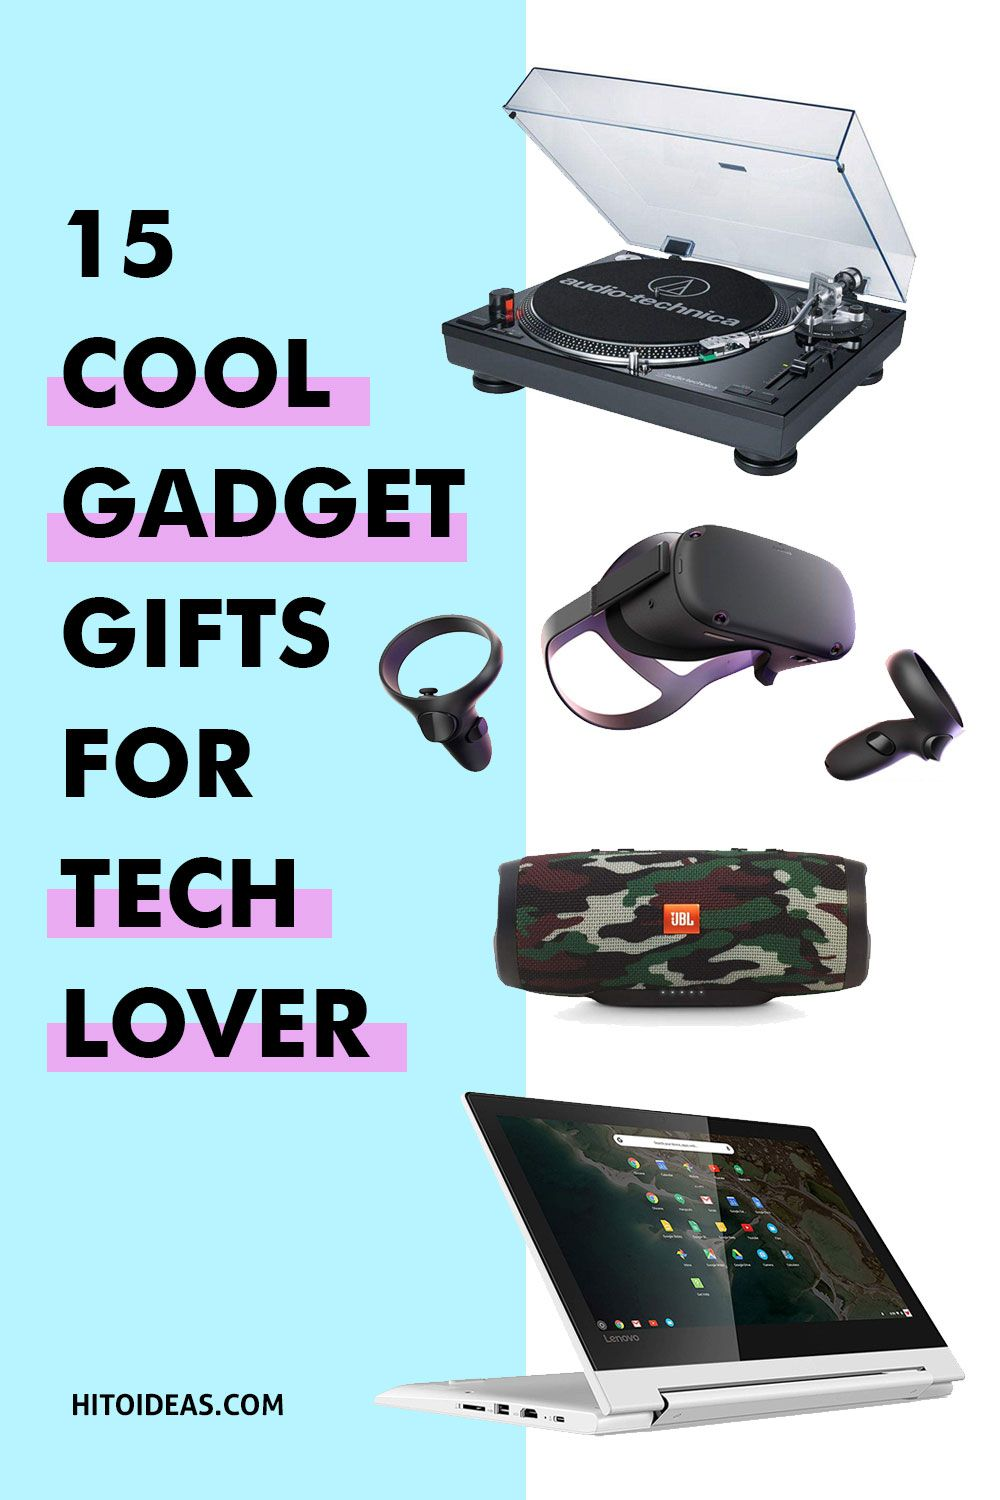 15 Cool And Unique Tech Gifts For Guys Of 2020 For Him And For Dad Cool Tech Gifts Tech Gifts Tech Gifts For Men